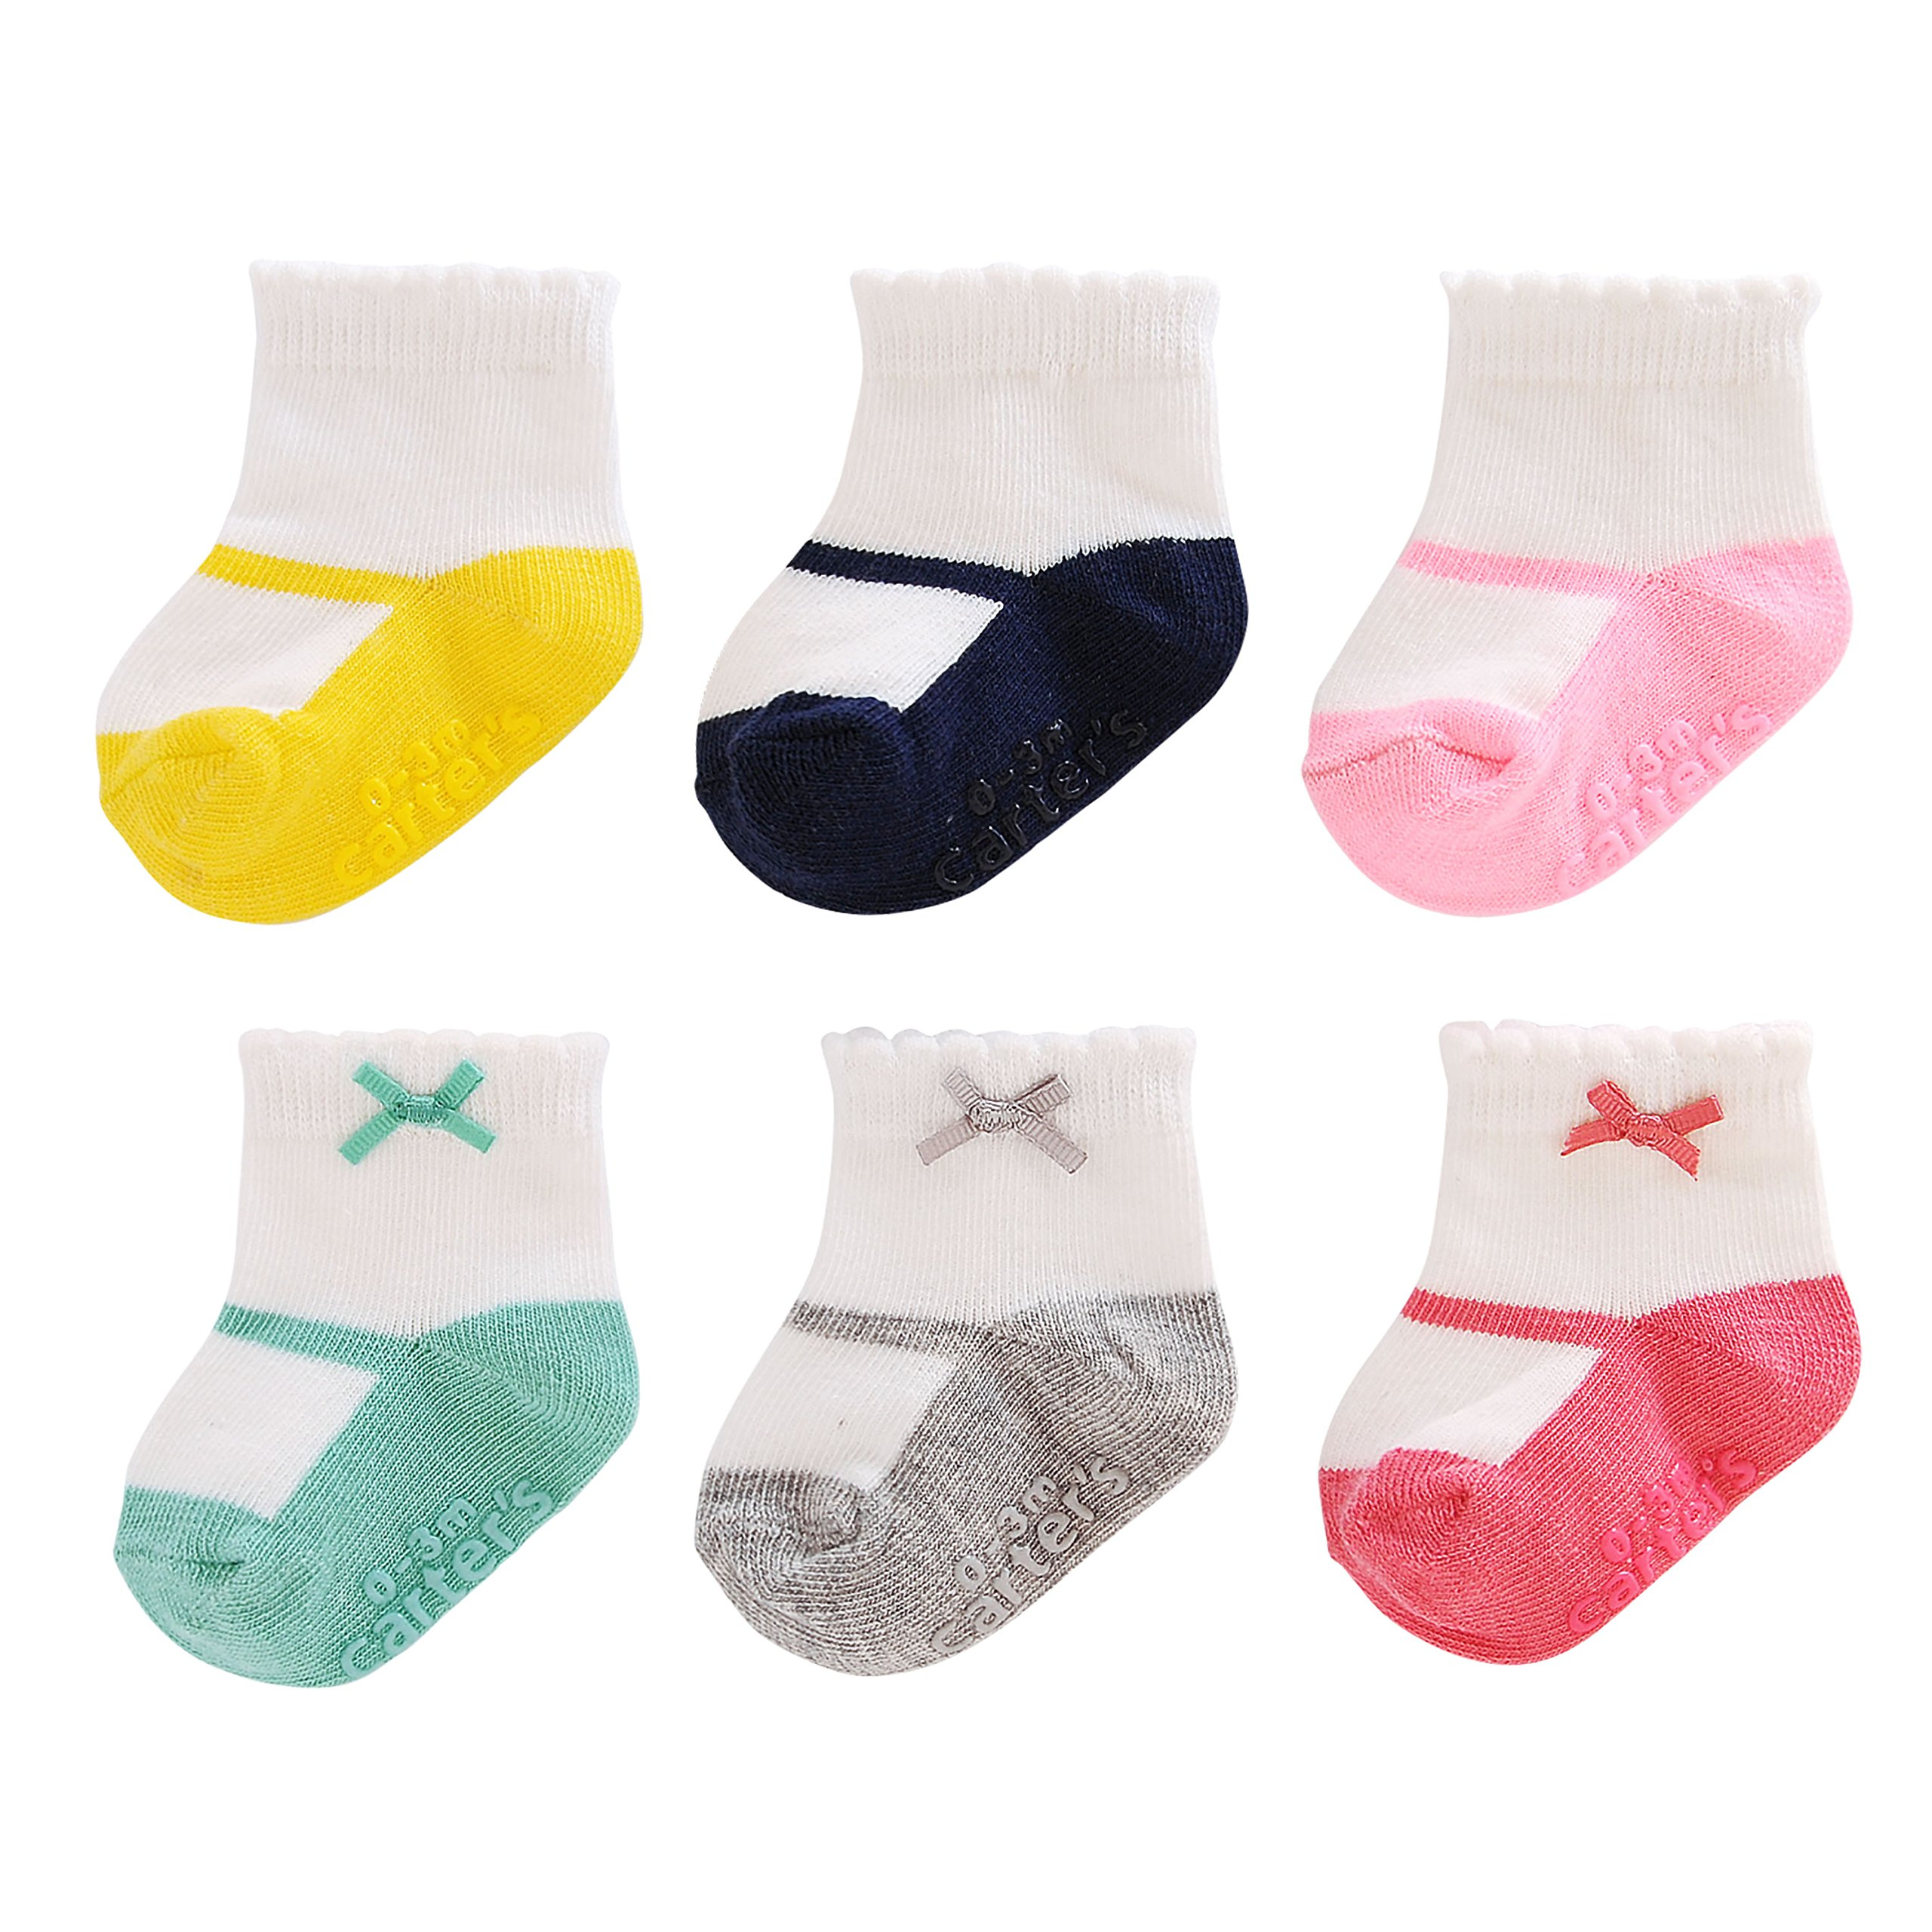 Carter's Girl 6-Pack Socks with Grippers, Crew- Mary Jane with Bow, 0-3 Months